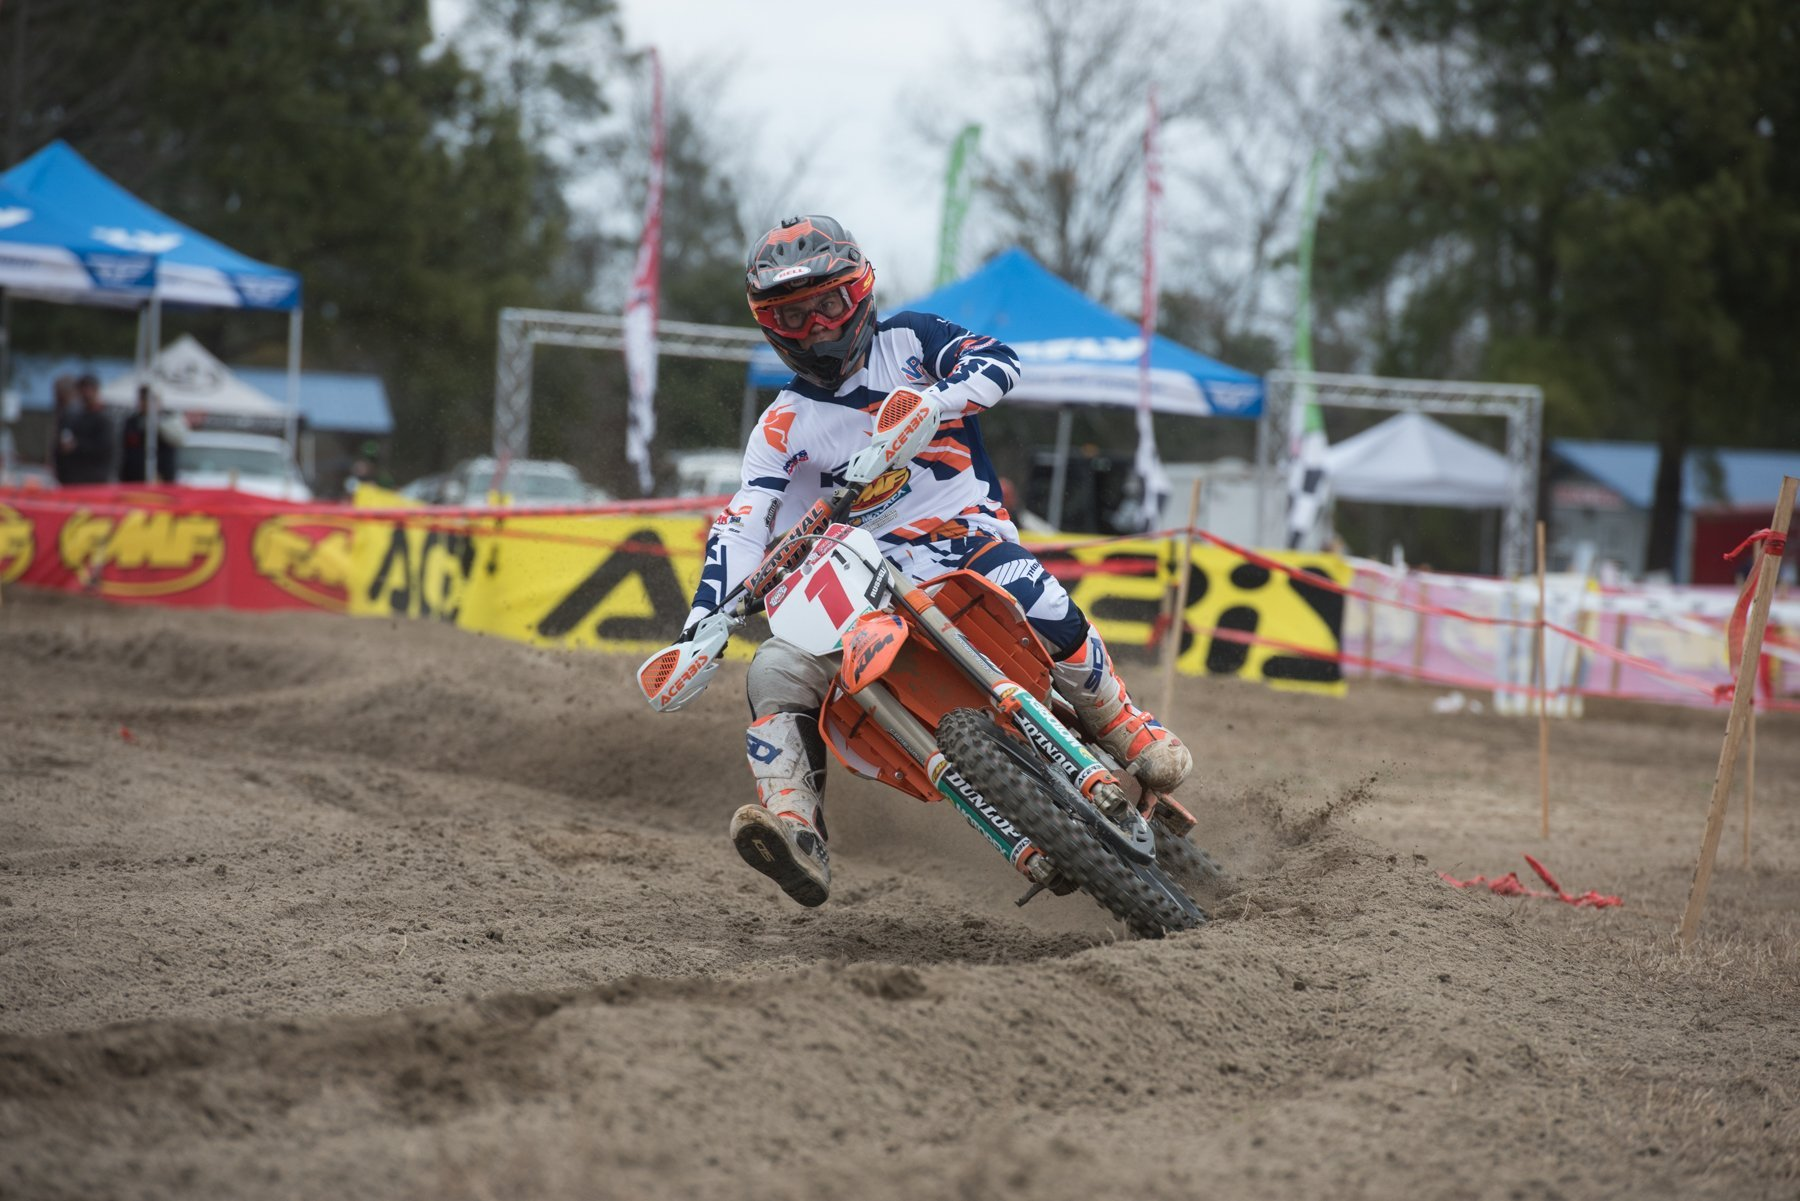 Kailub Russell Takes Win at Kenda Full Gas Sprint Enduro Series Opener